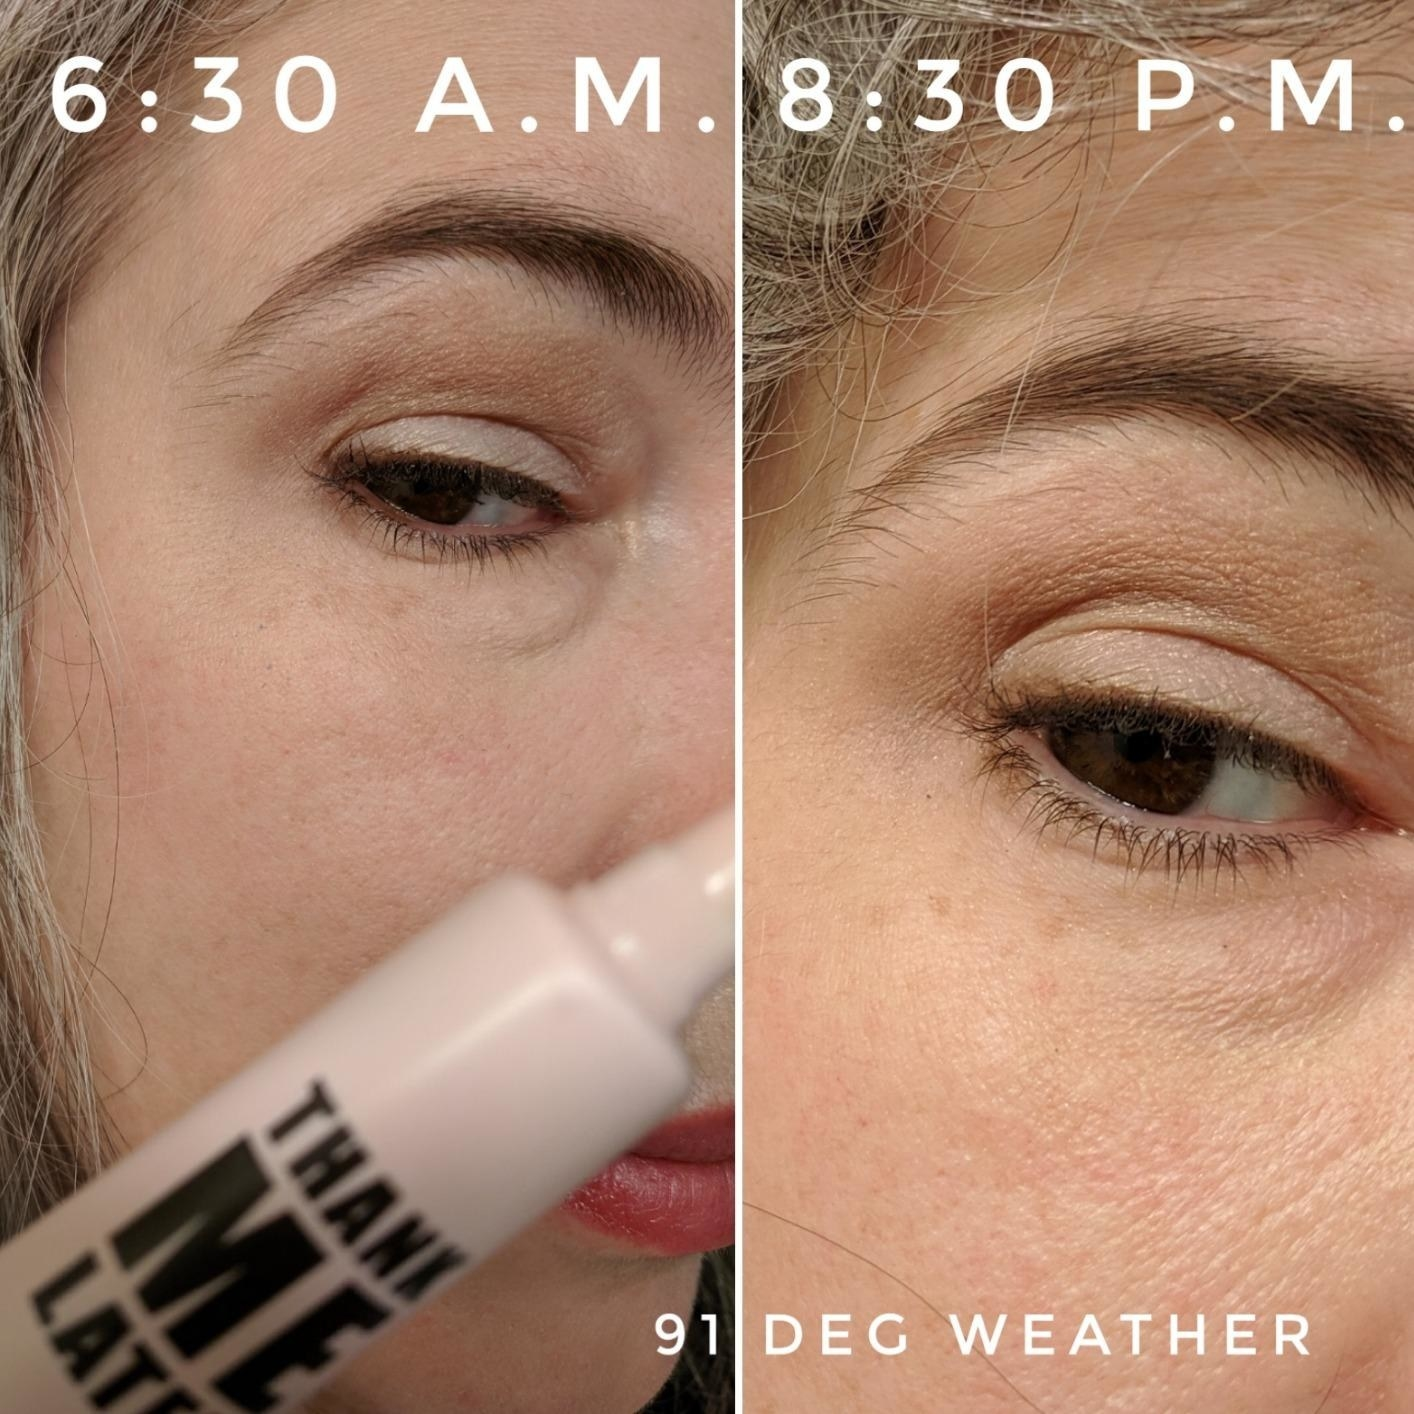 Reviewer before-and-after photos showing eye makeup remaining in tact from 6:30 a.m. to 8:30 p.m.